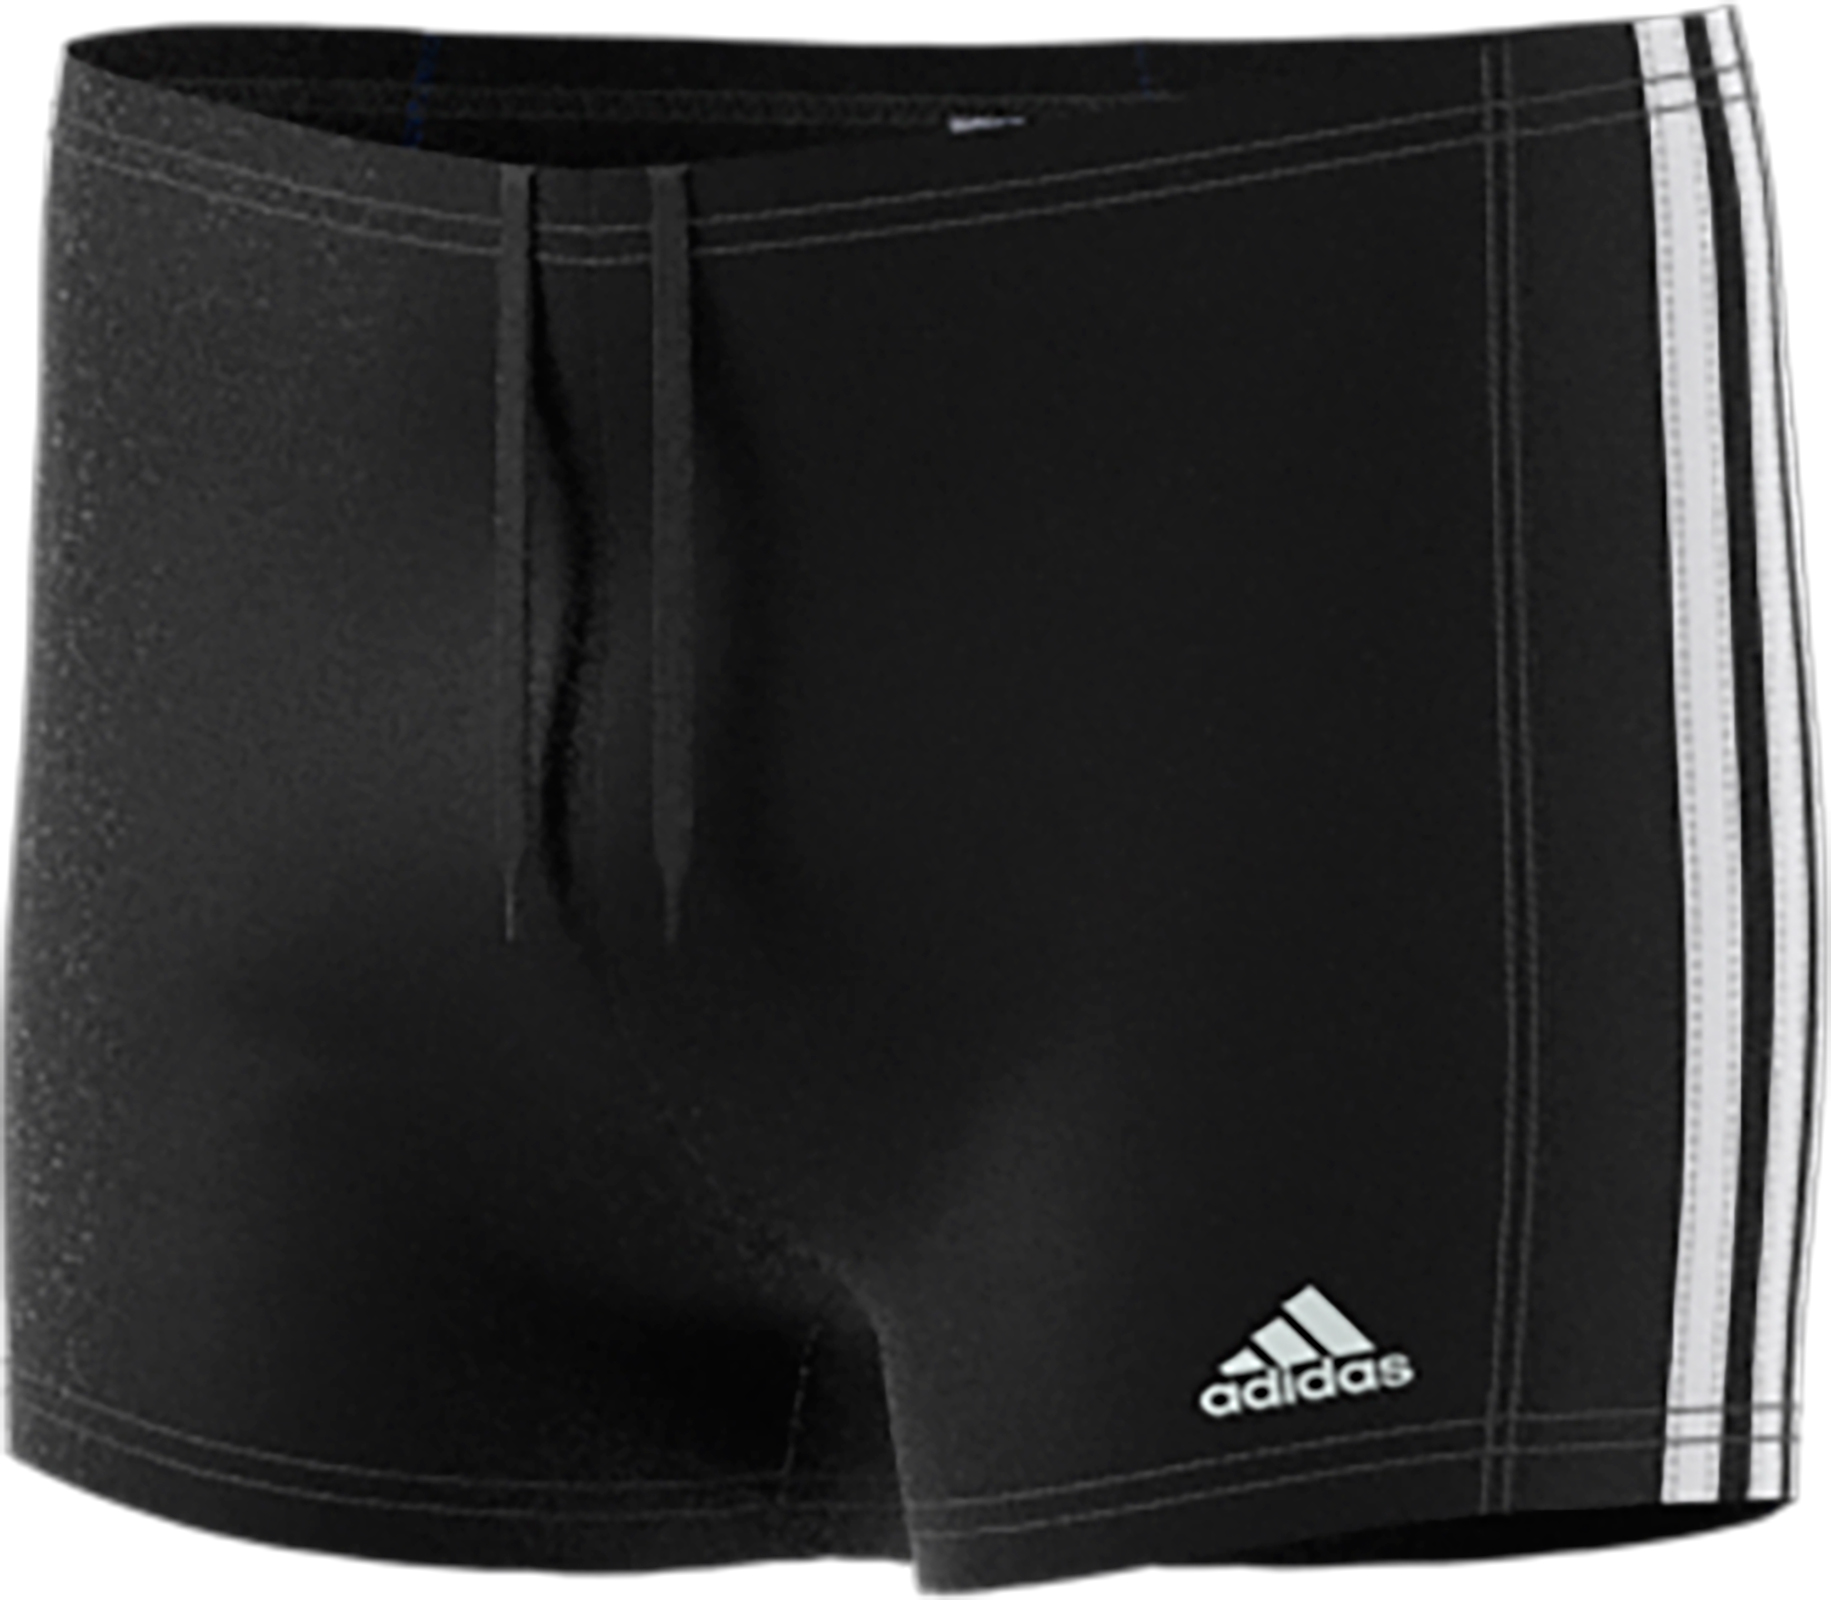 adidas Essence Core 3 Stripes Boxers Badebukser - Dreng | swim_clothes